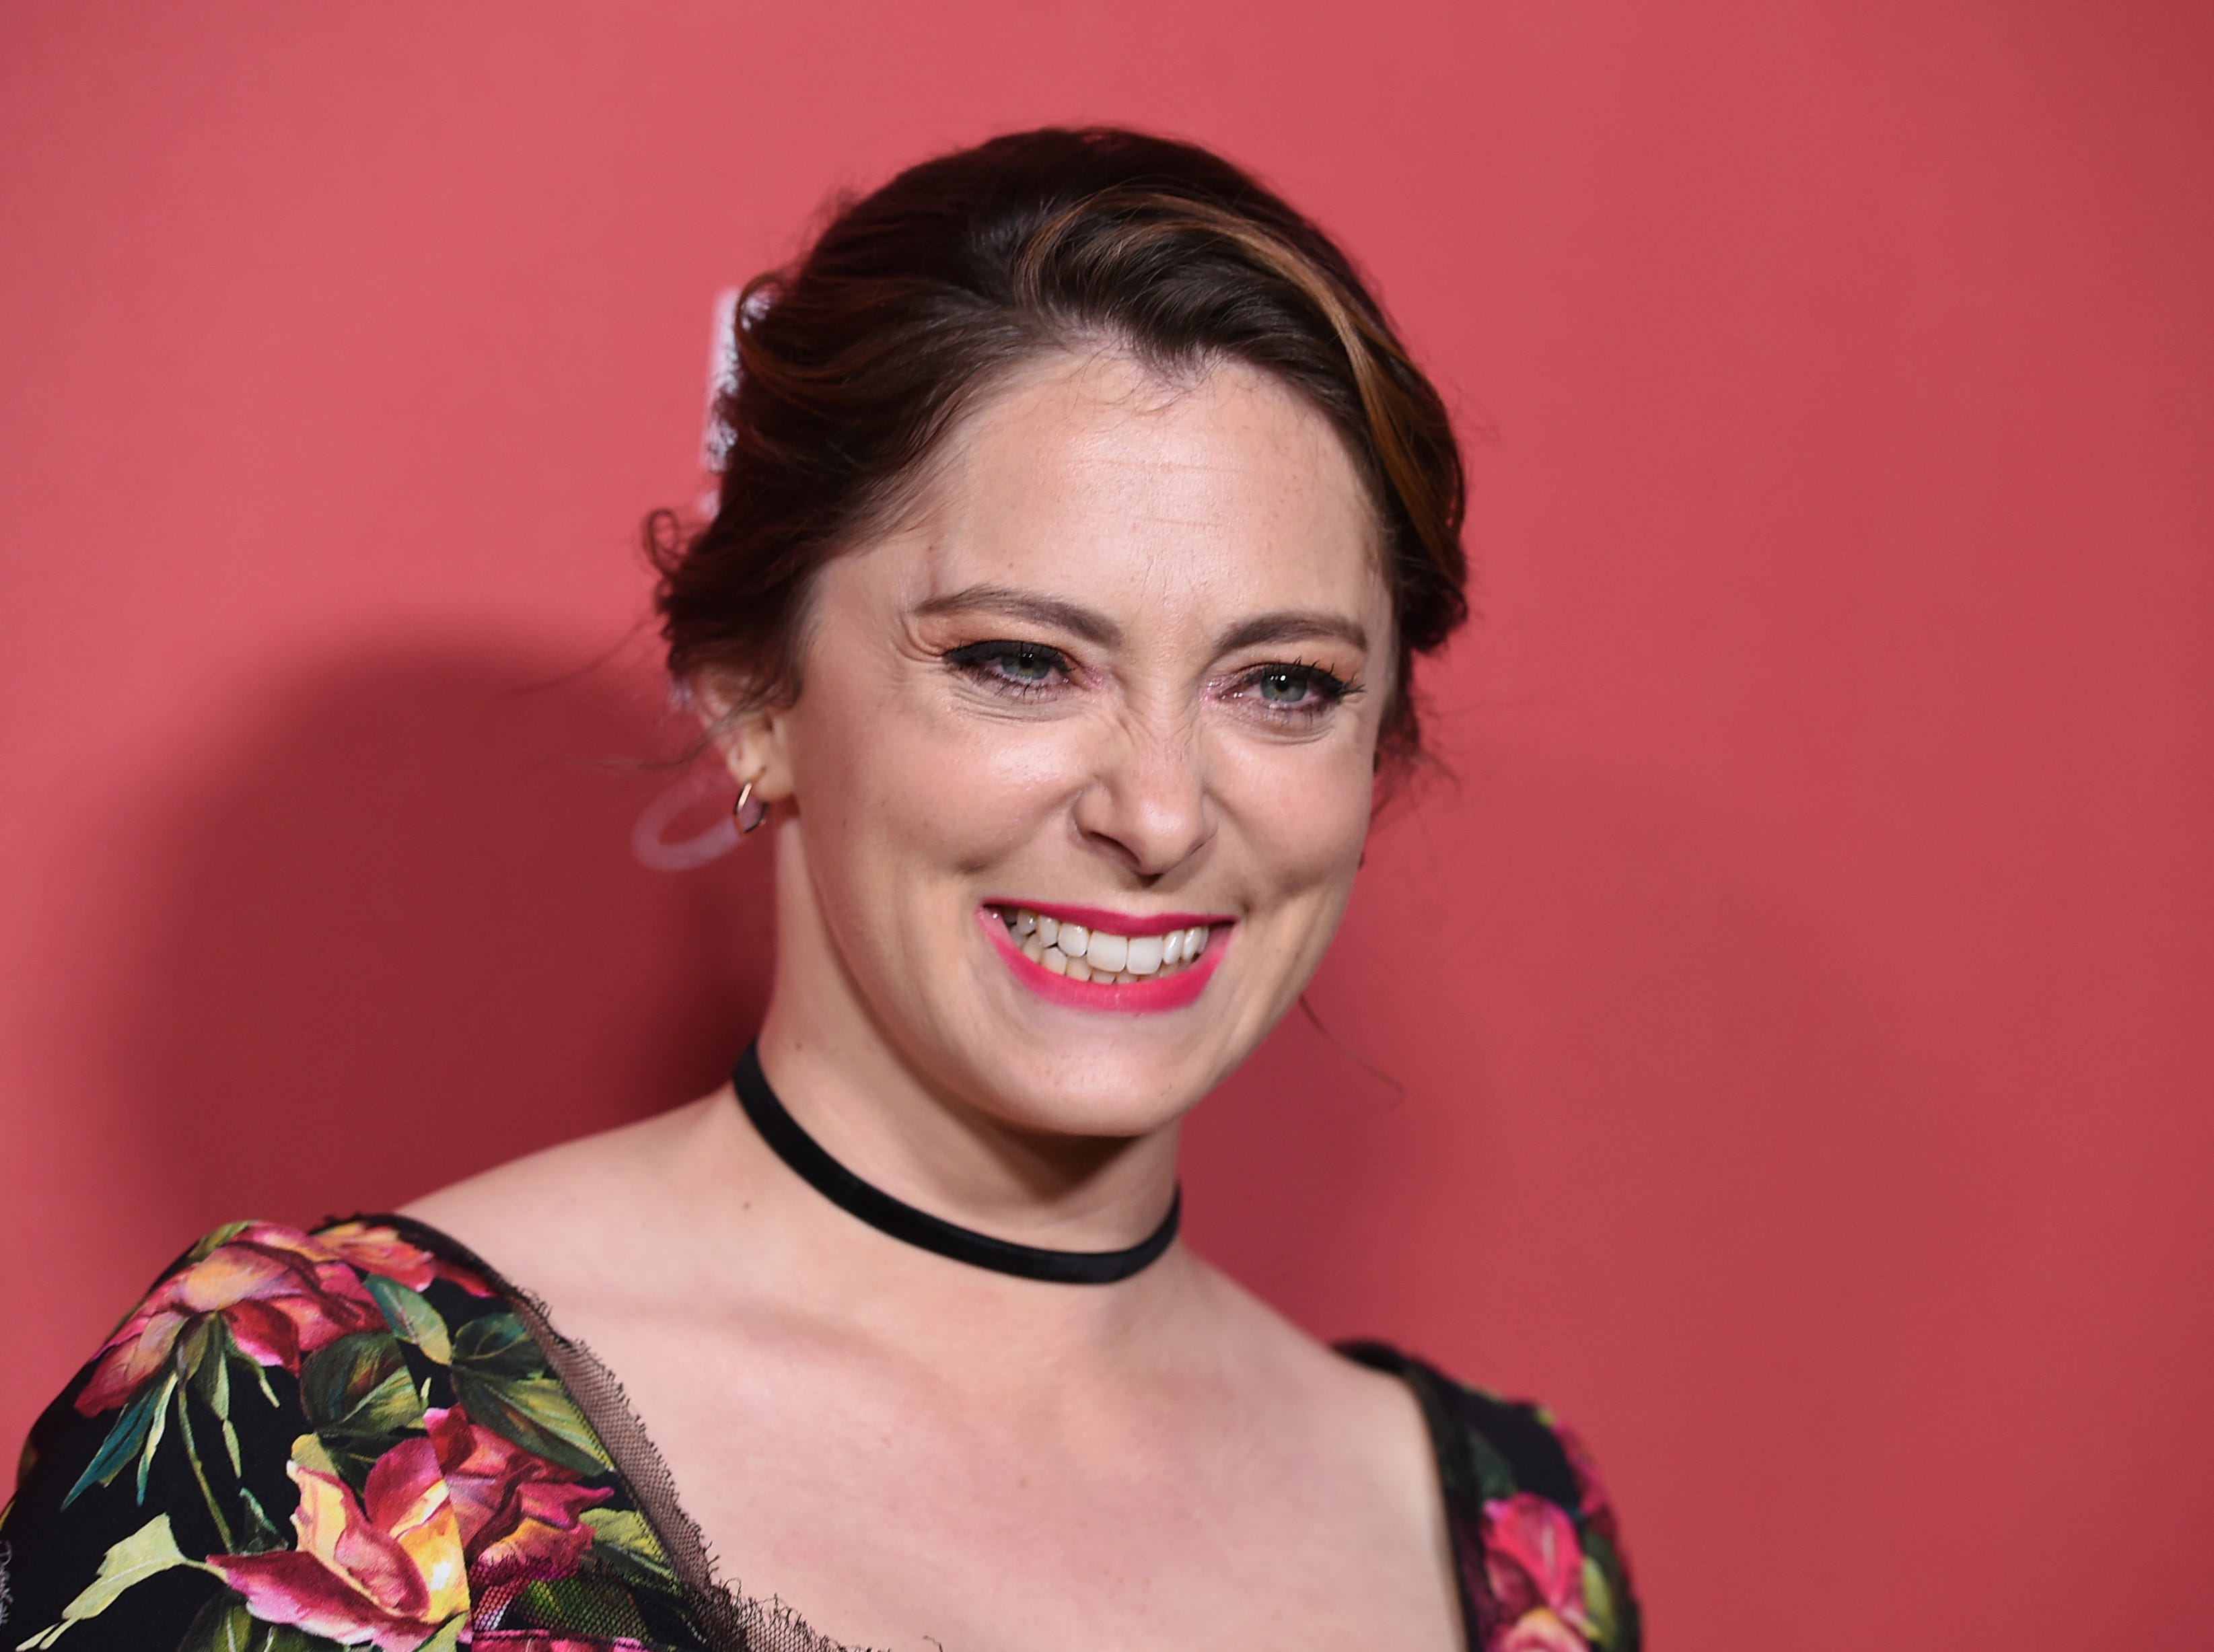 Rachel Bloom arrives at the Patron of the Artists Awards on Thursday, Nov. 8, 2018, at the Wallis Annenberg Center for the Performing Arts in Beverly Hills, Calif. (Photo by Jordan Strauss/Invision/AP) ORG XMIT: CAPM159